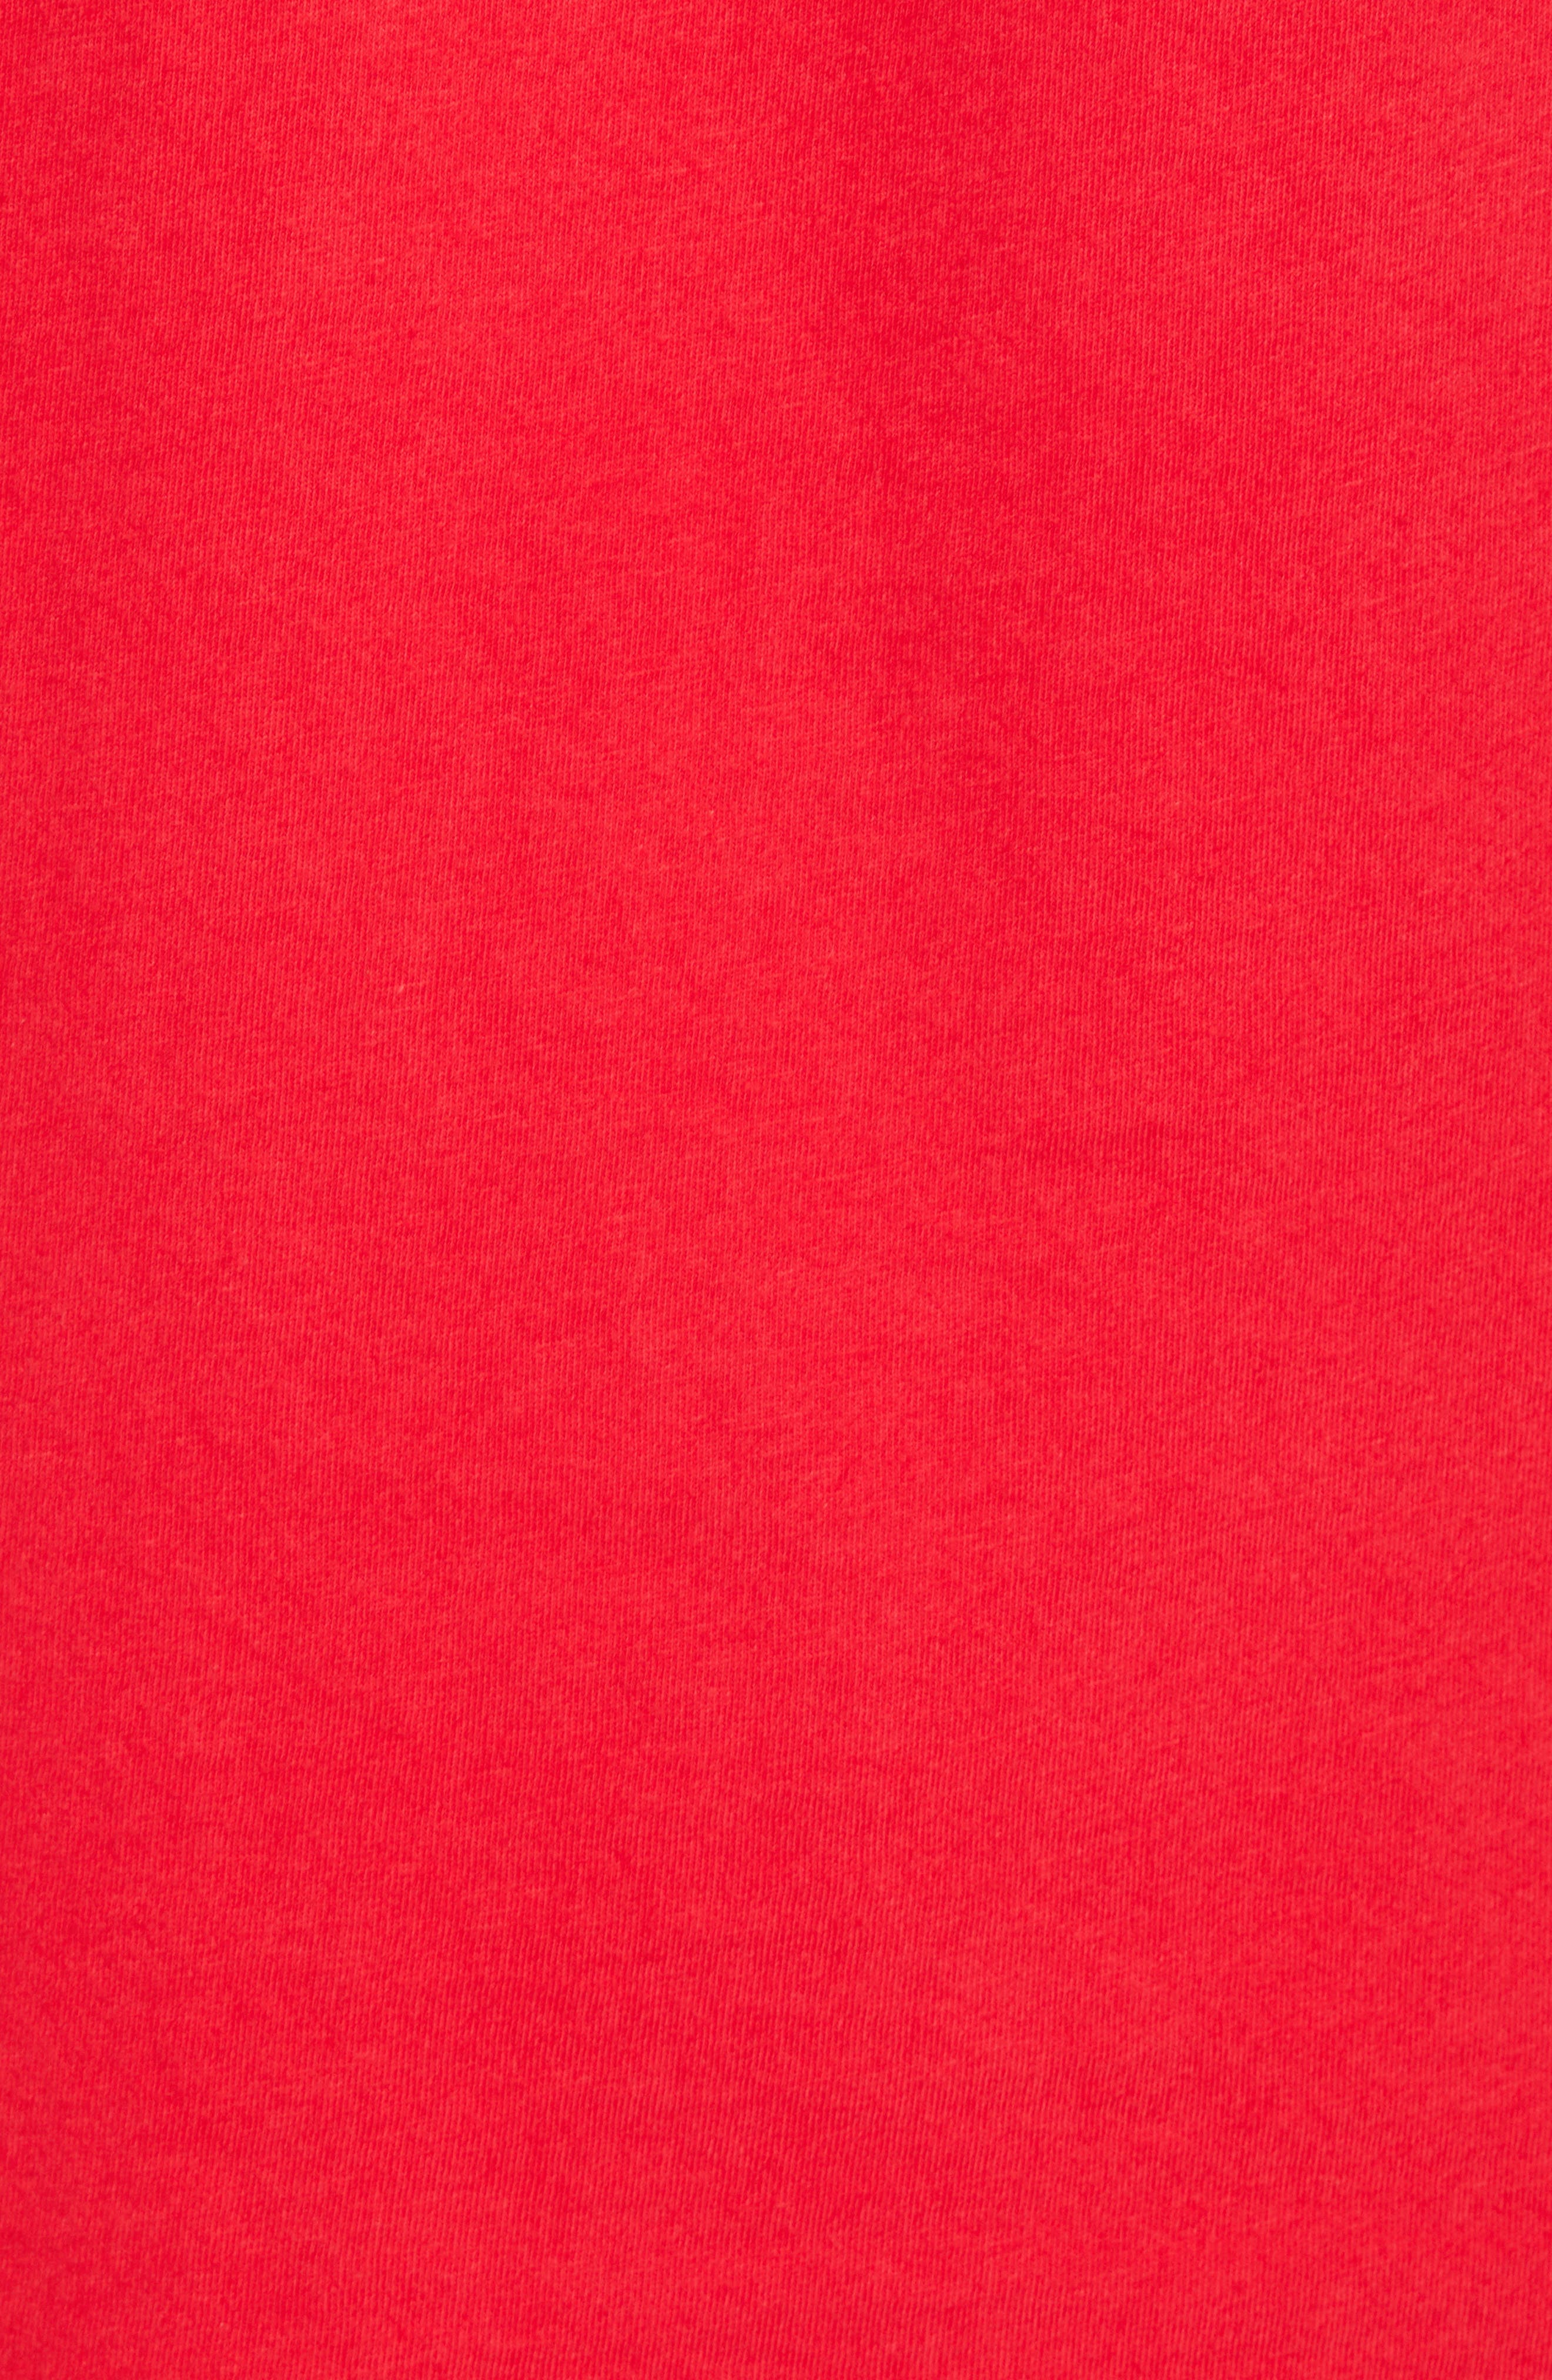 Outfield T-Shirt,                             Alternate thumbnail 5, color,                             True Red